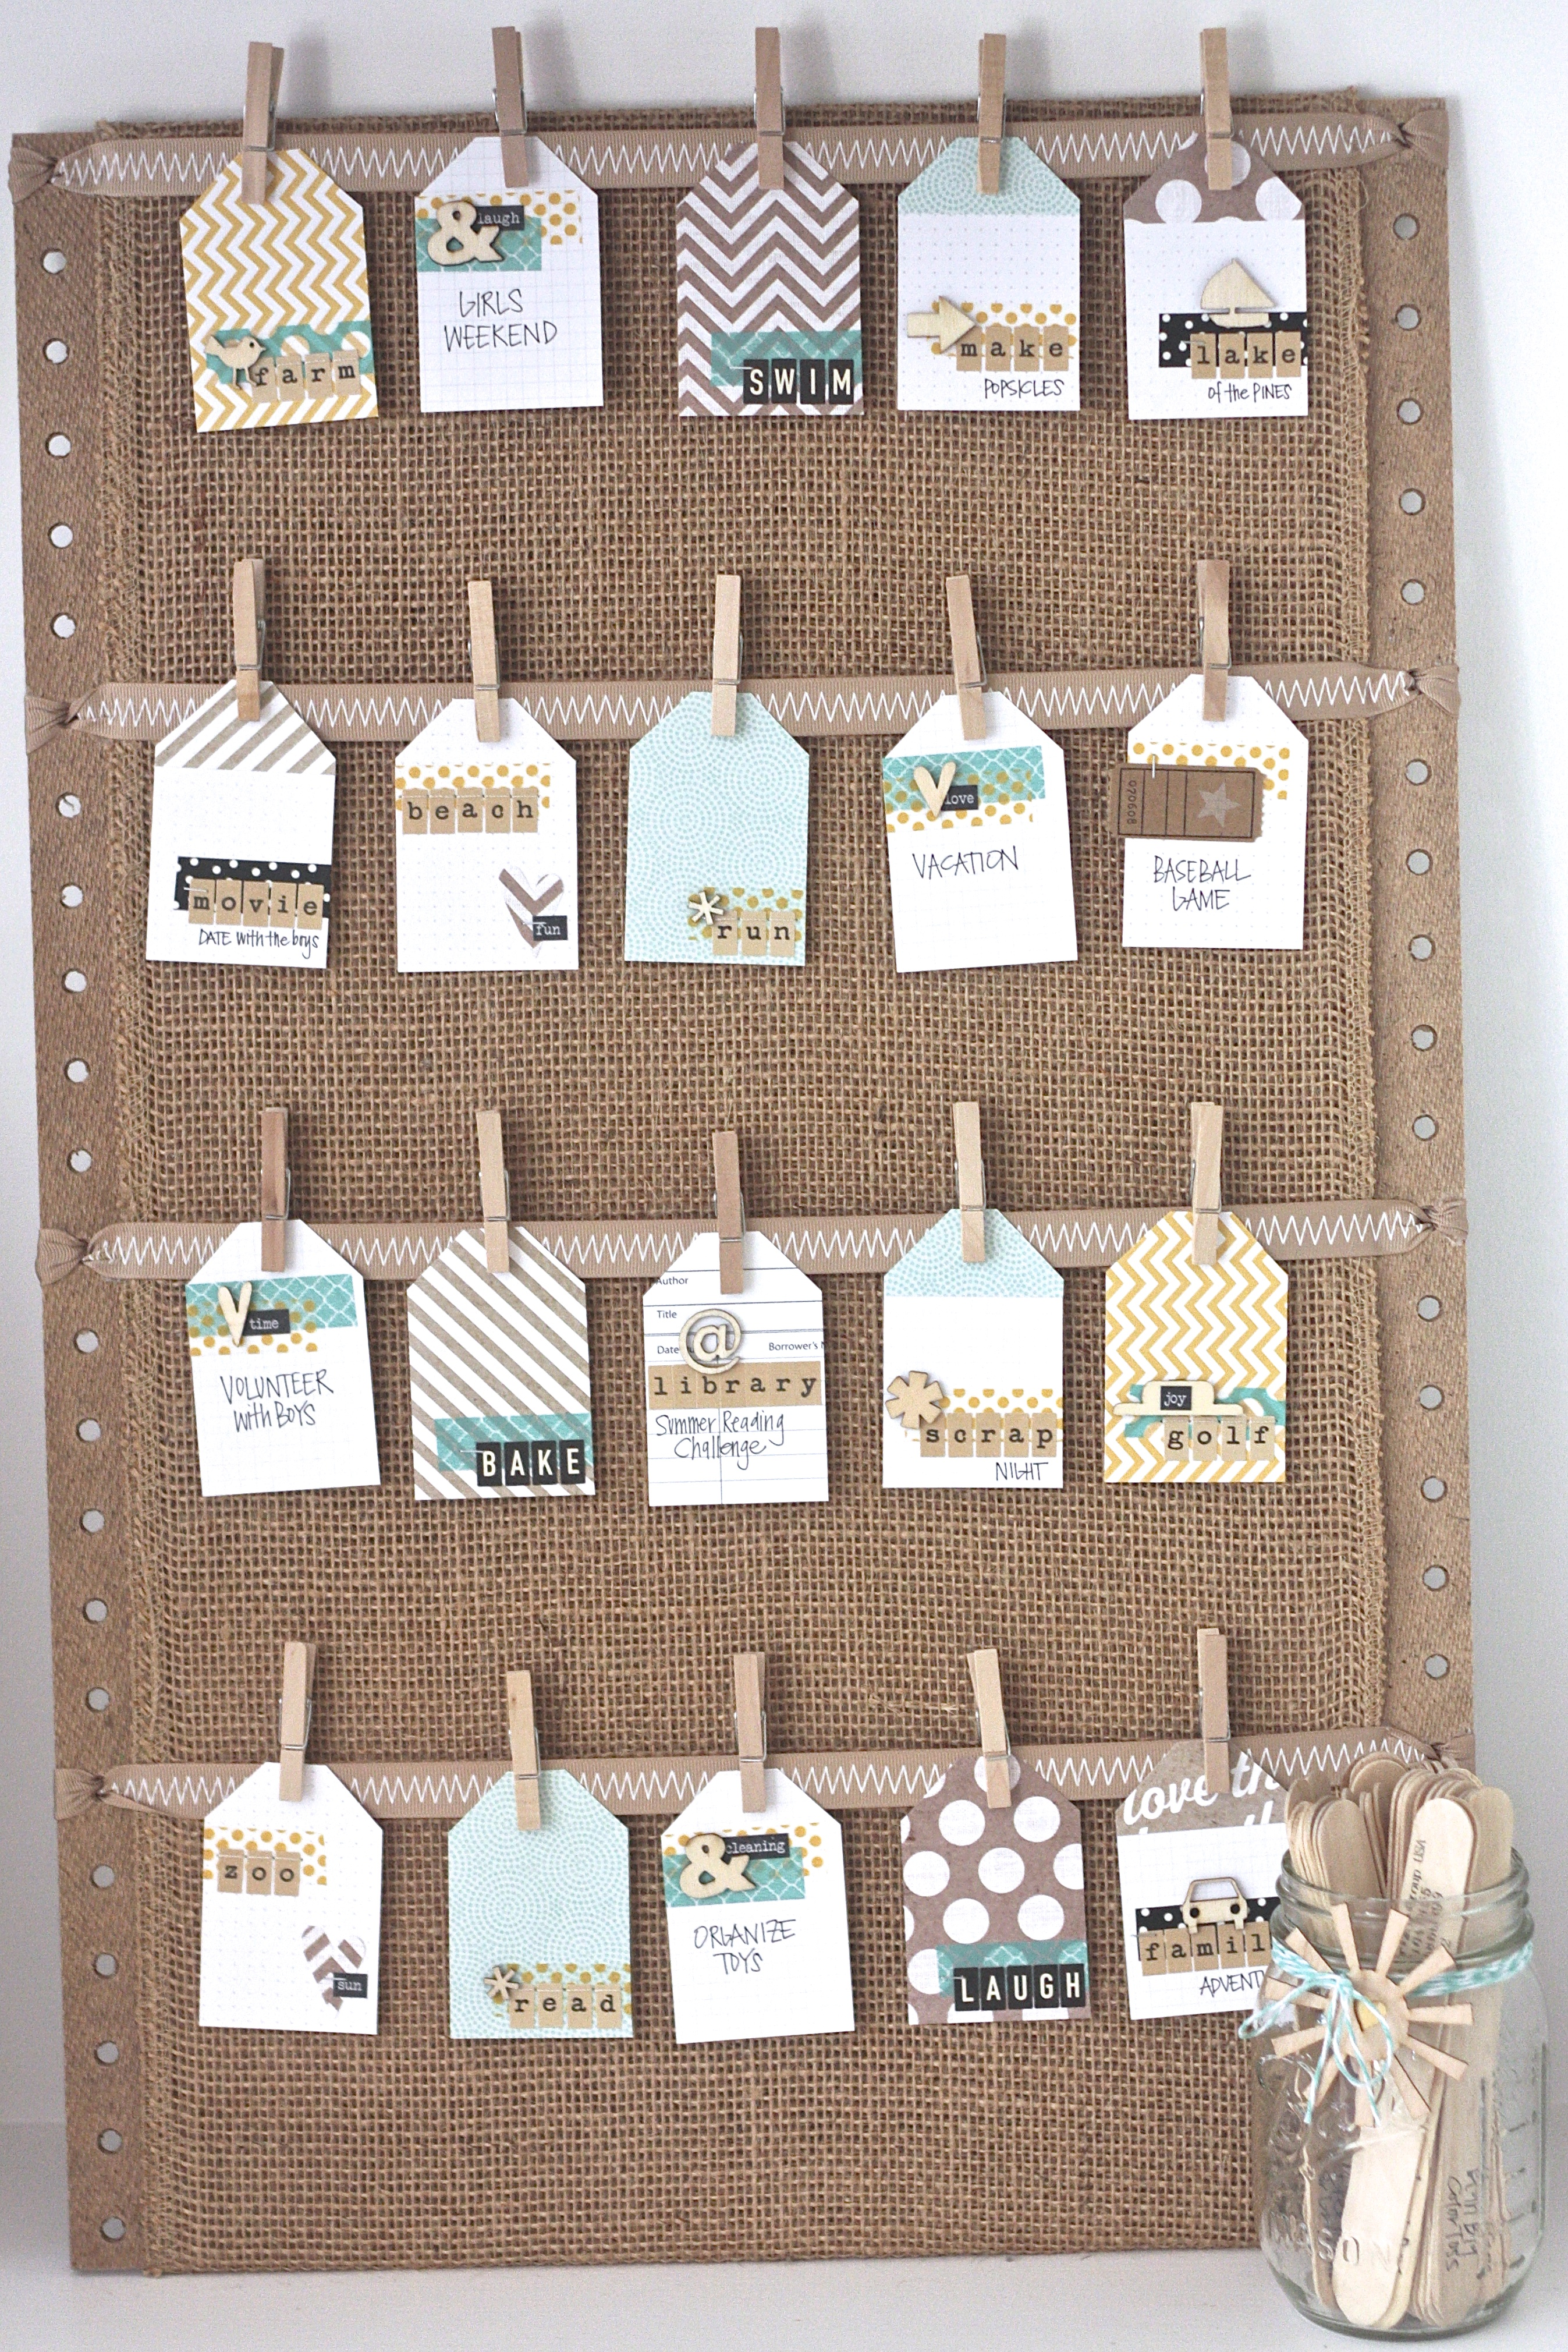 Summer vacation scrapbook ideas - Loved And Used The Me And My Best Ideas Pocket Pages Journal Cards The Colors Were Perfect Kept Embellishments Simple With Wood Veneers And Washi Tape